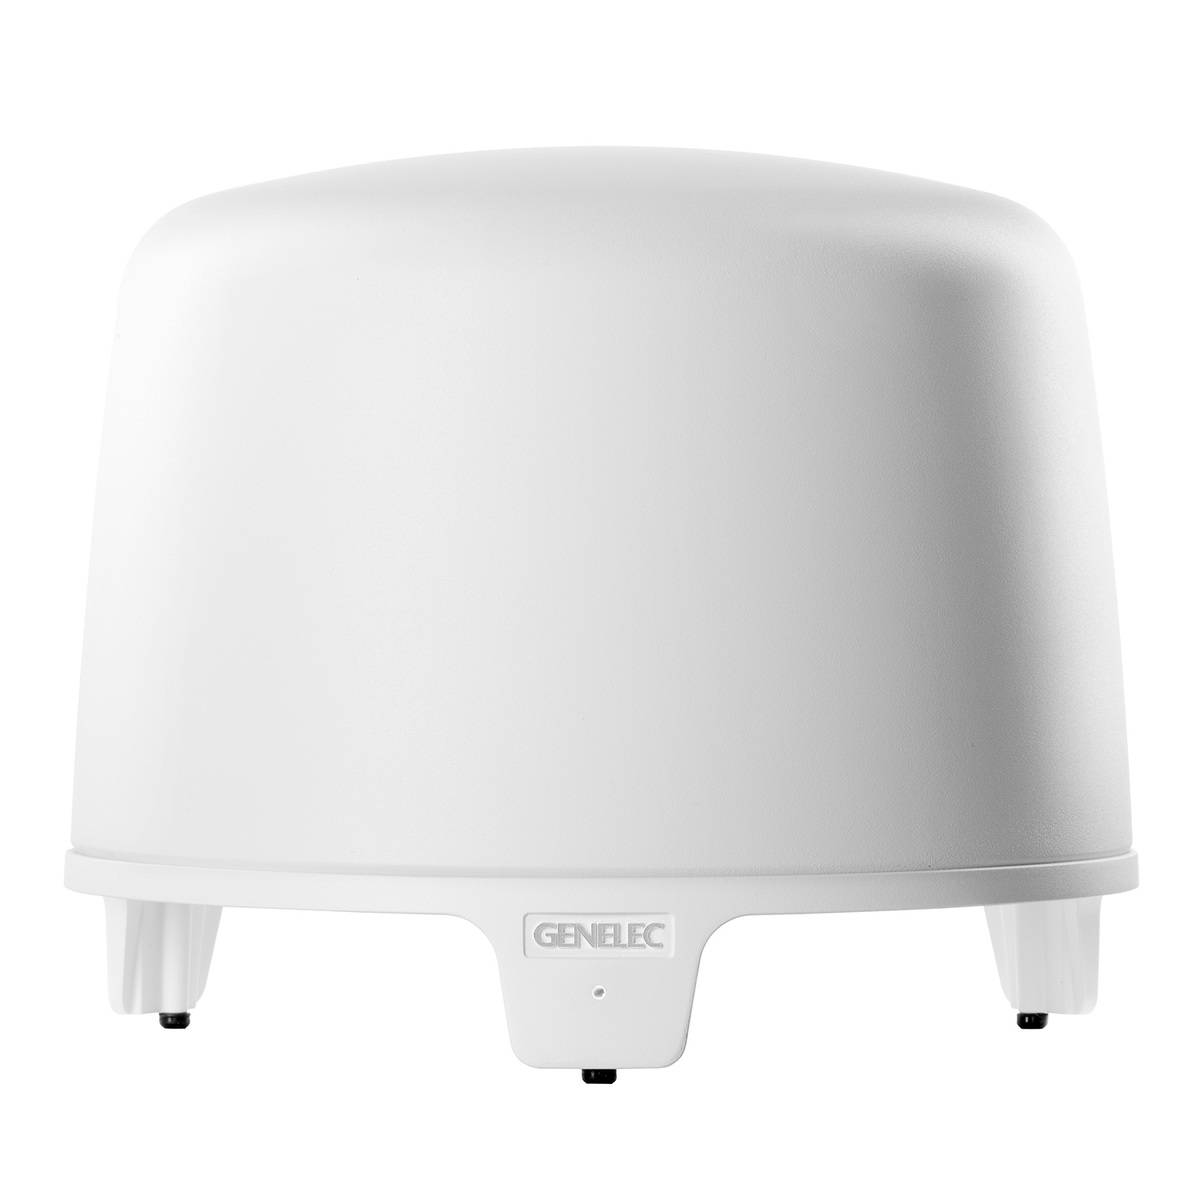 Genelec F Two (B) active subwoofer, white